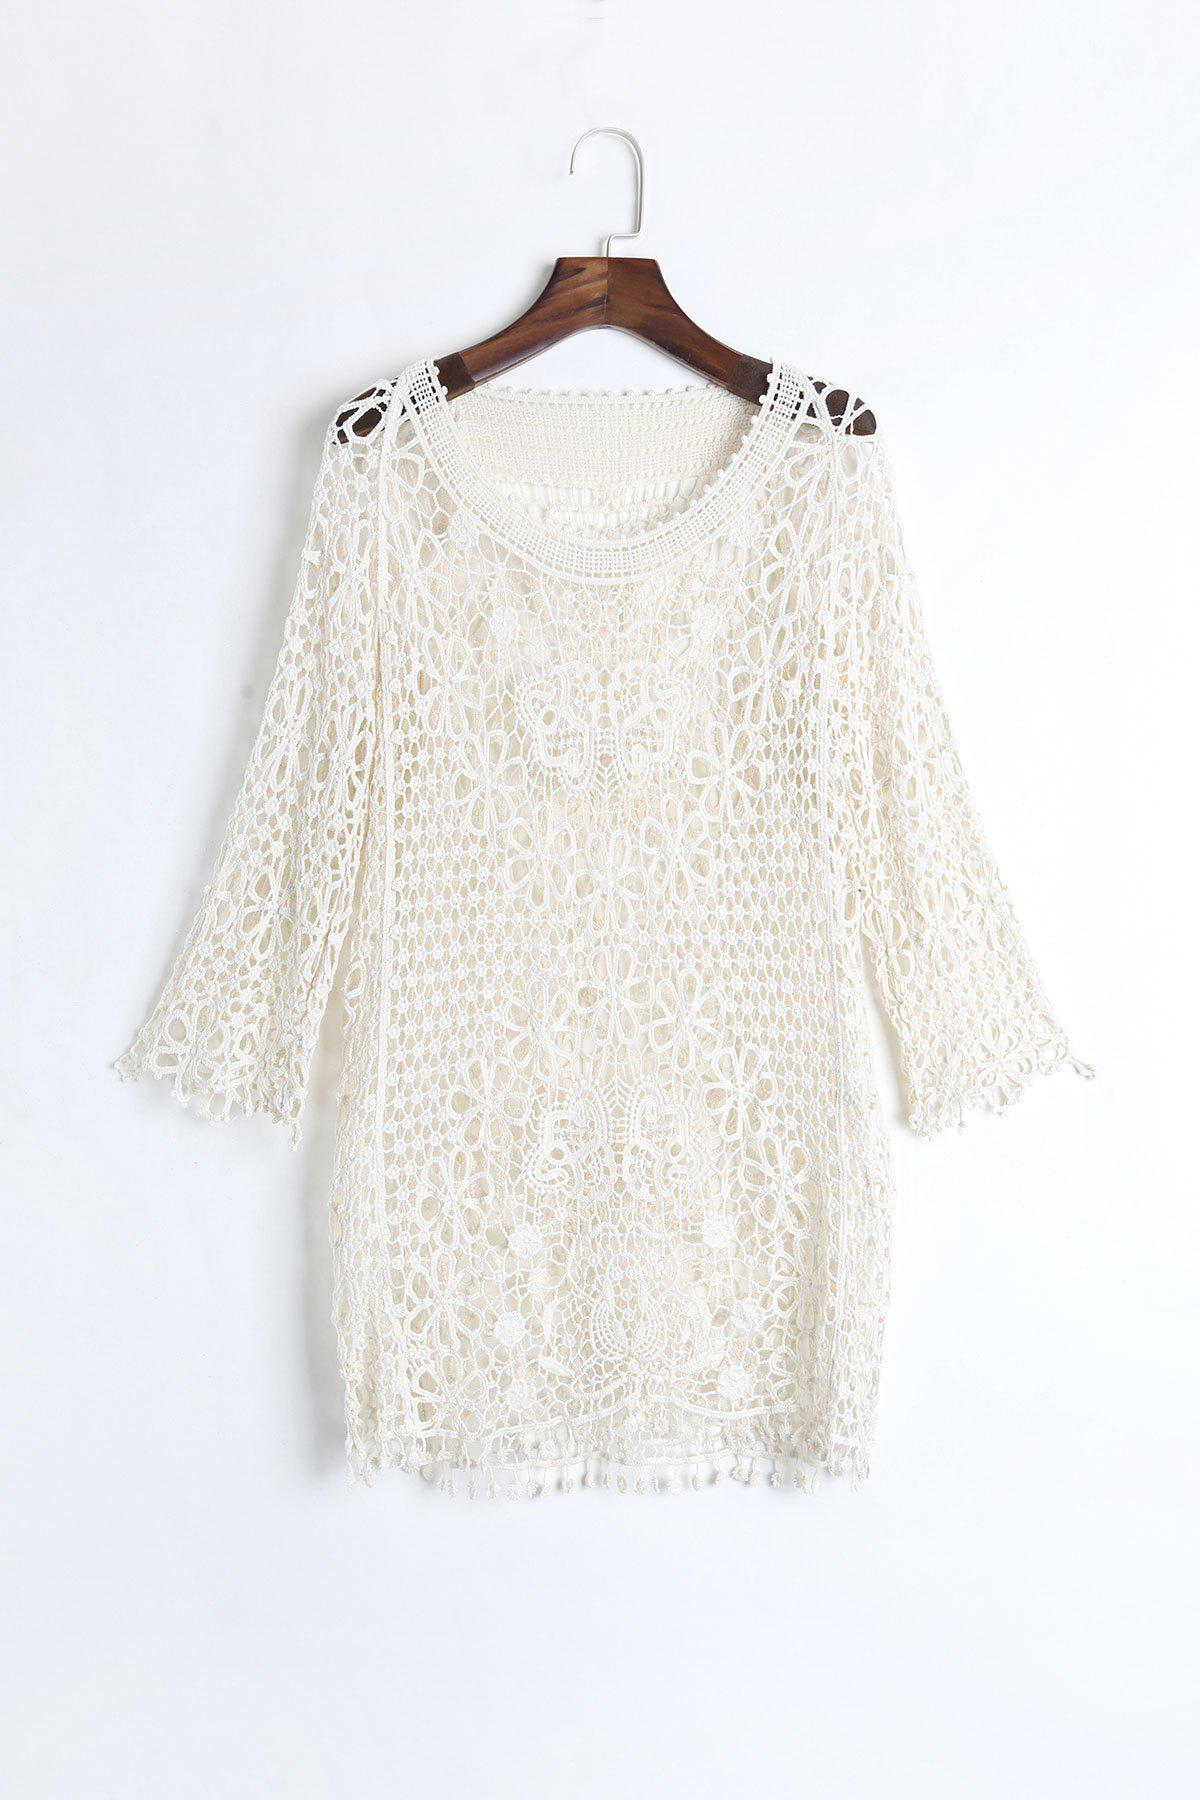 Chic 3/4 Sleeve Scoop Neck Pure Color Hollow Out Women's Cover Up - OFF WHITE ONE SIZE(FIT SIZE XS TO M)